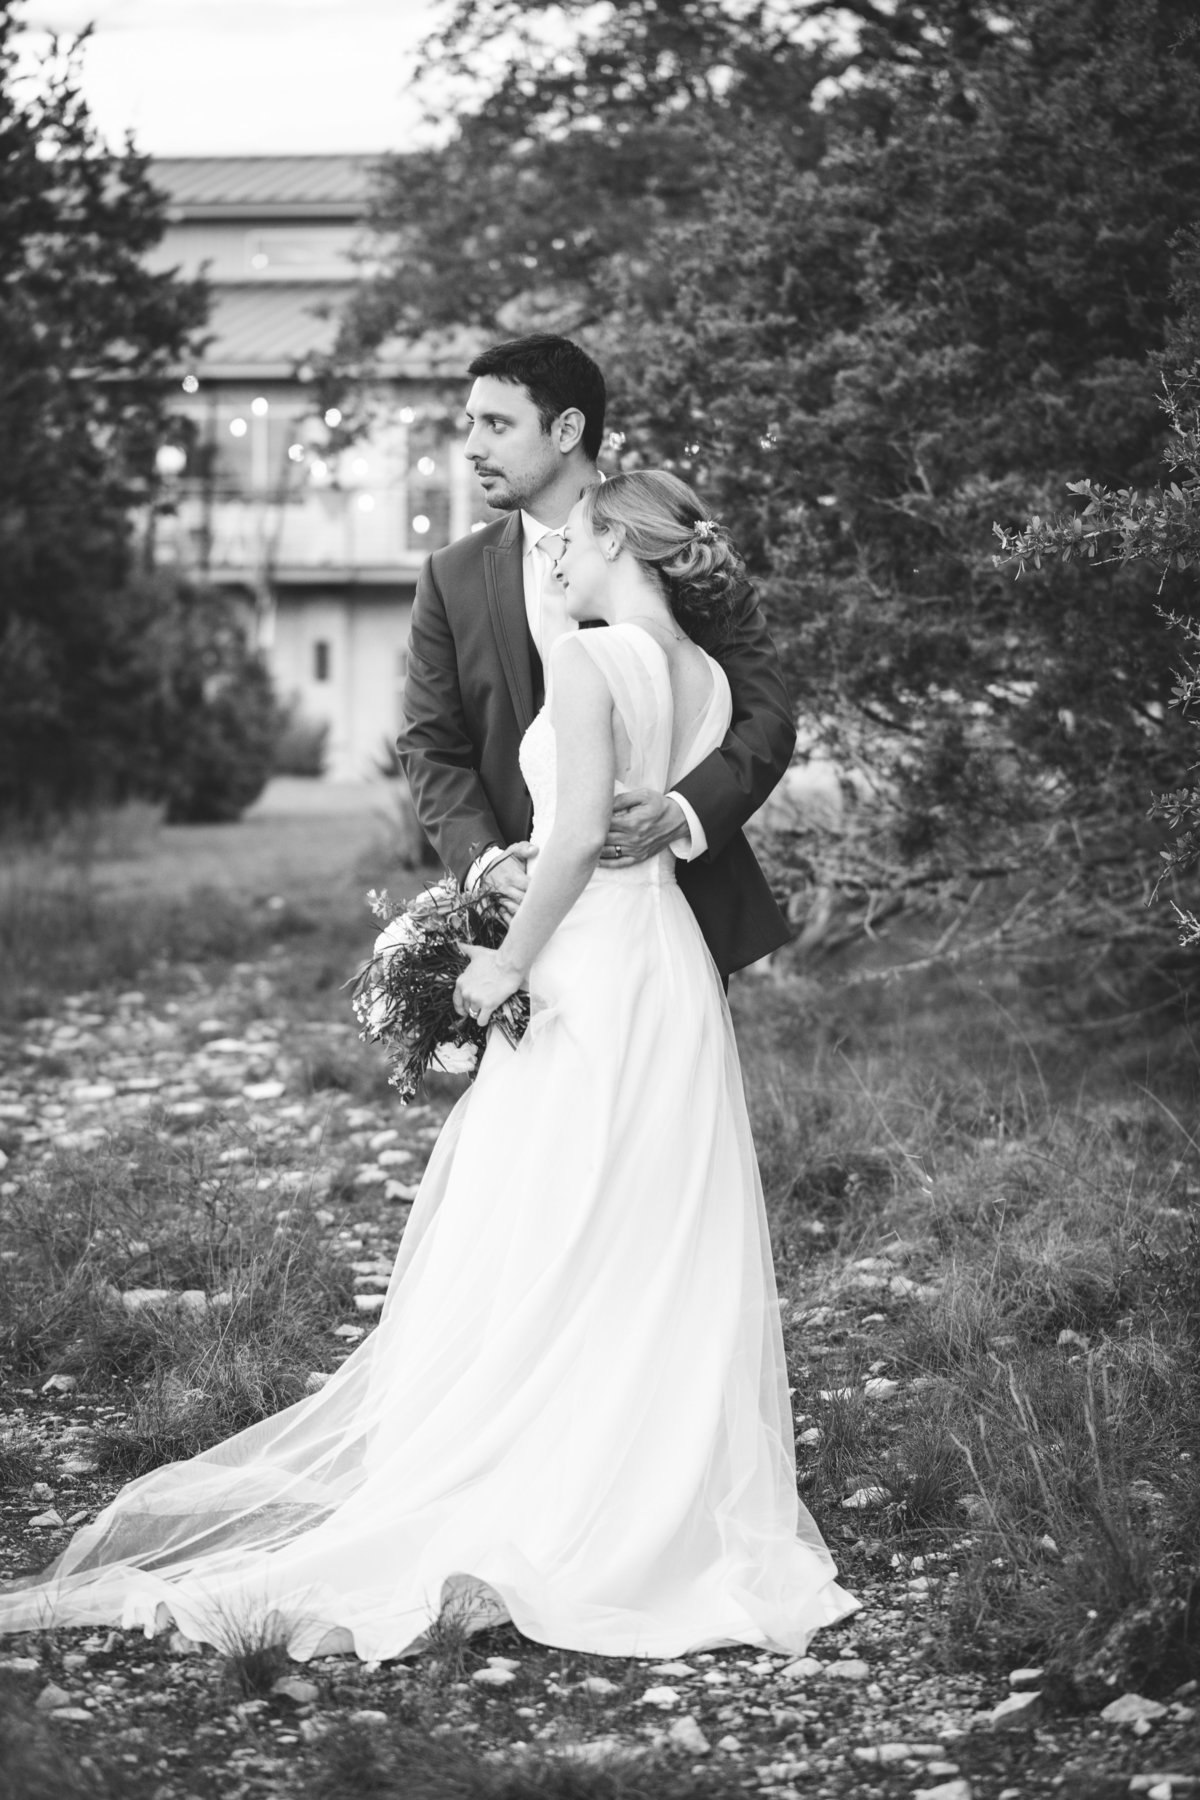 terrace club wedding photographer black white bride groom 2600 US-290, Dripping Springs, TX 78620